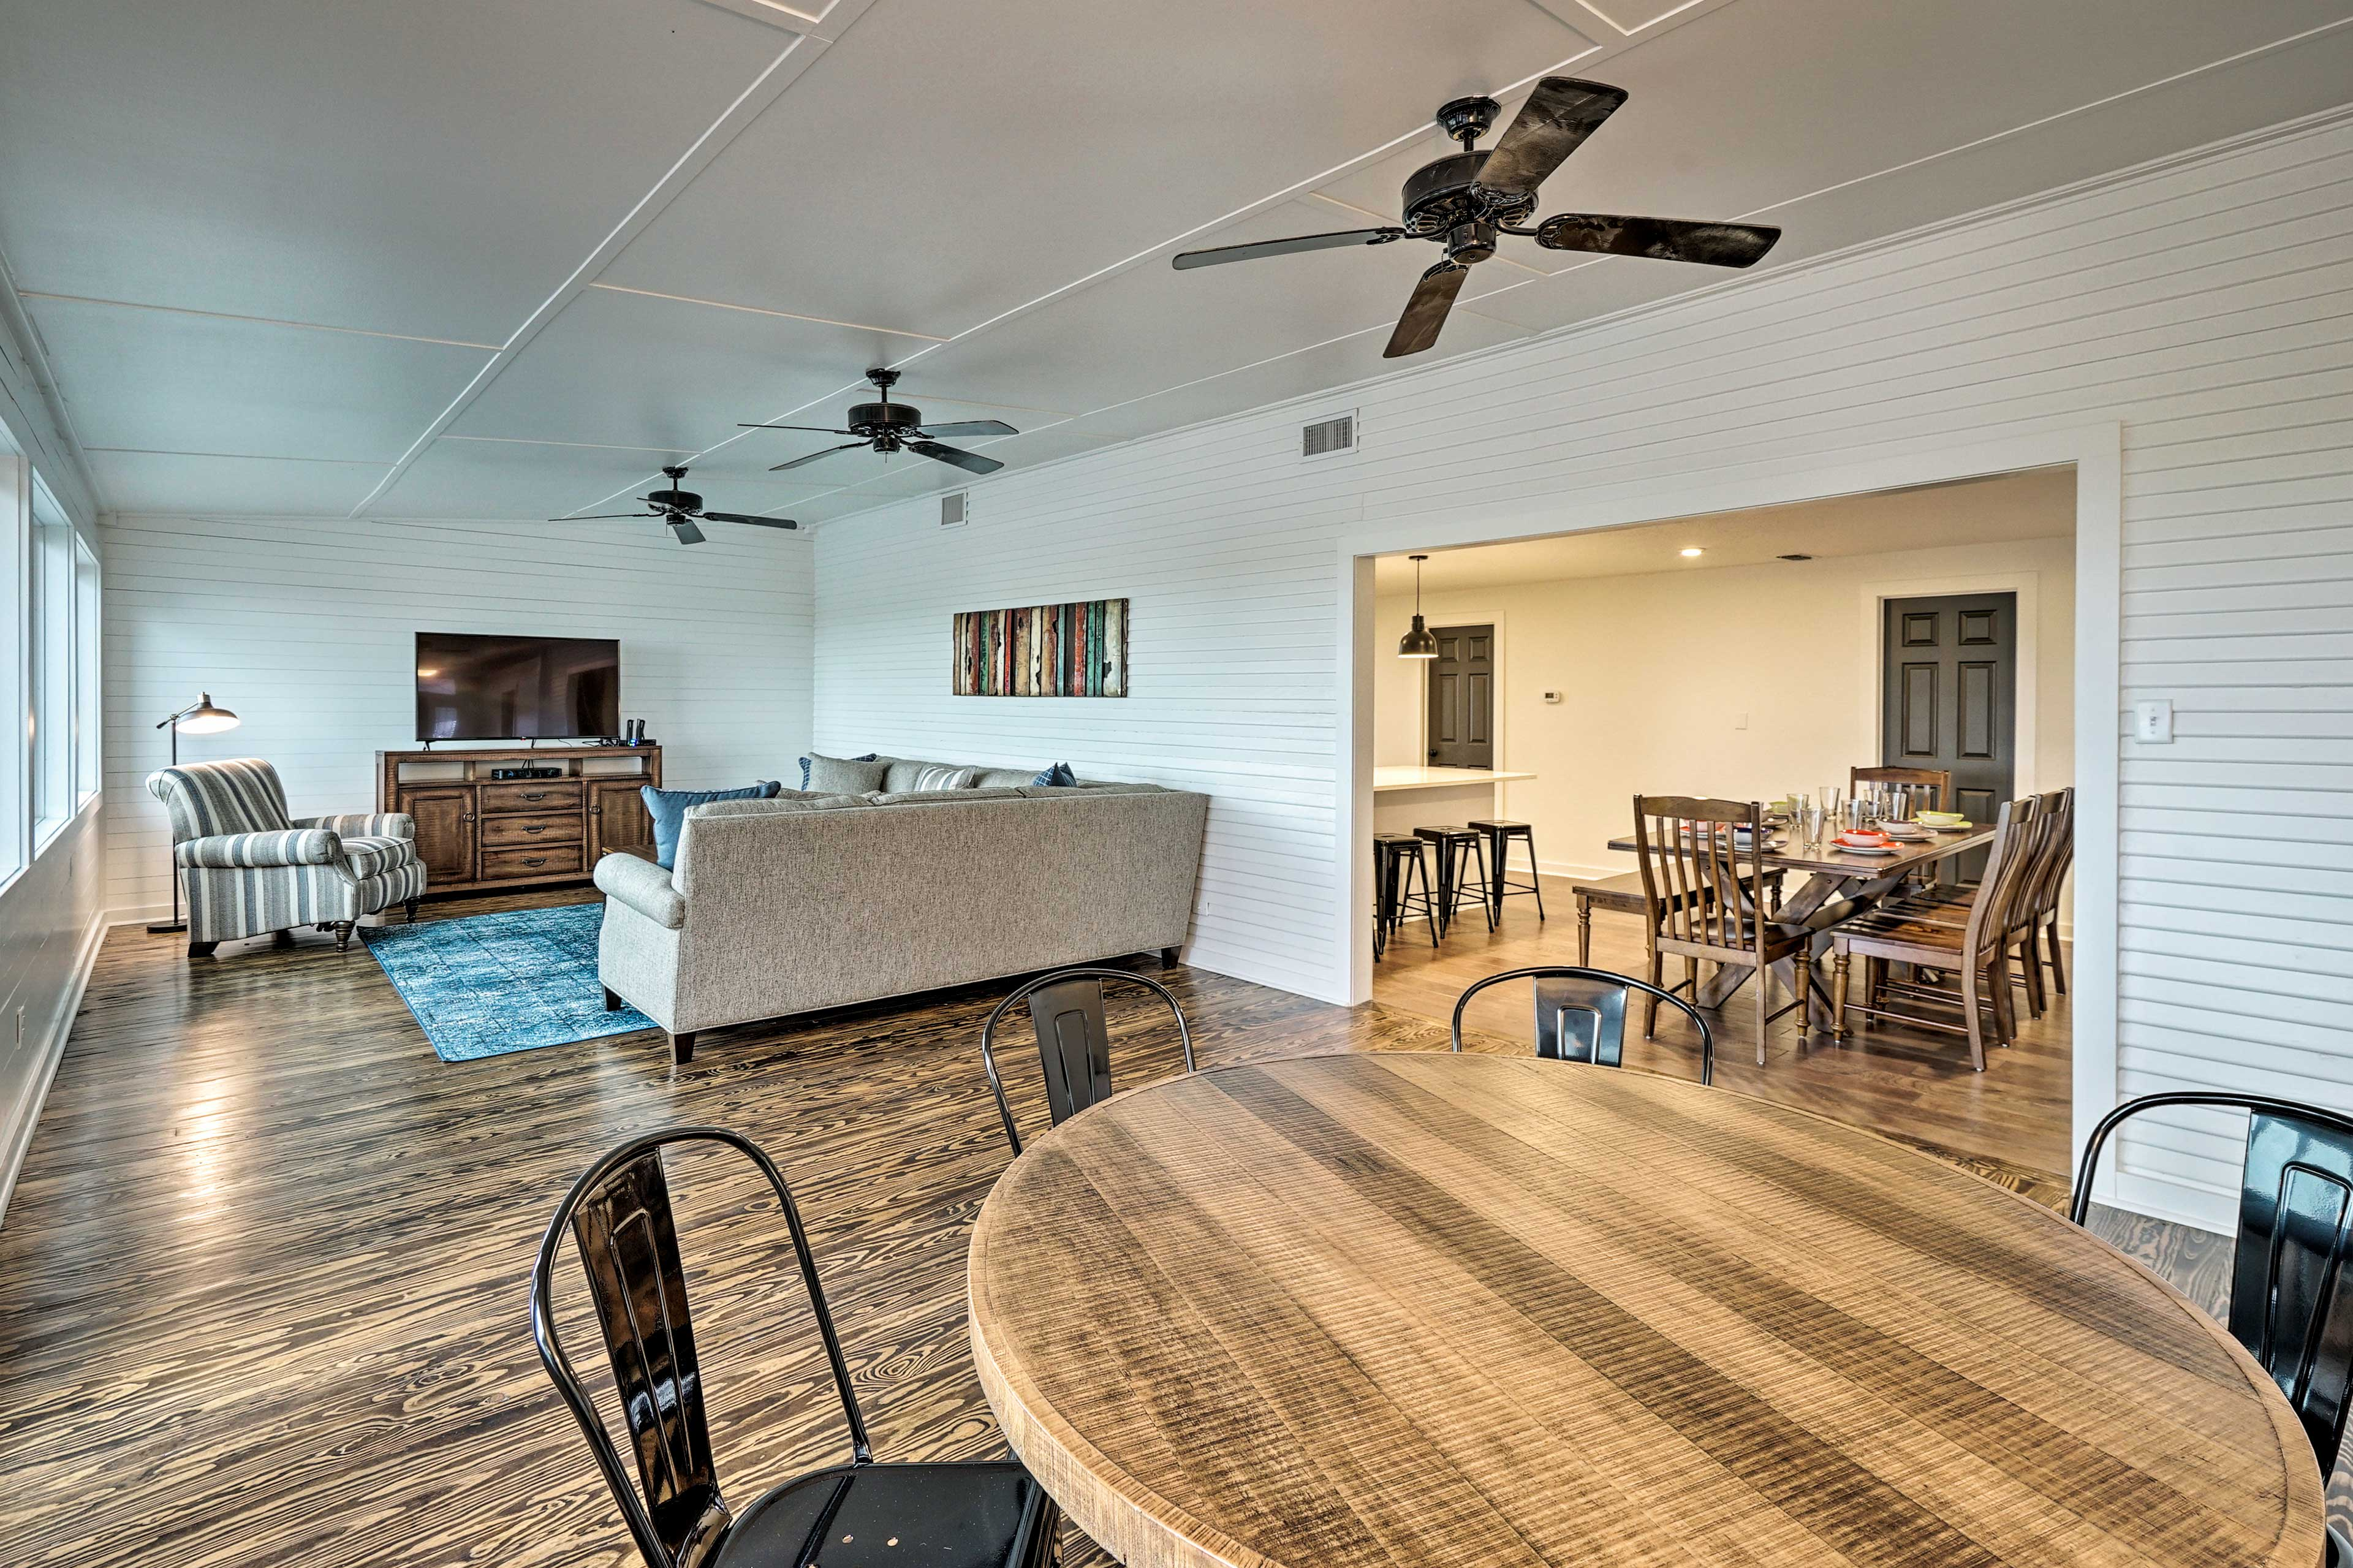 Make yourself at home inside this charming vacation rental house!